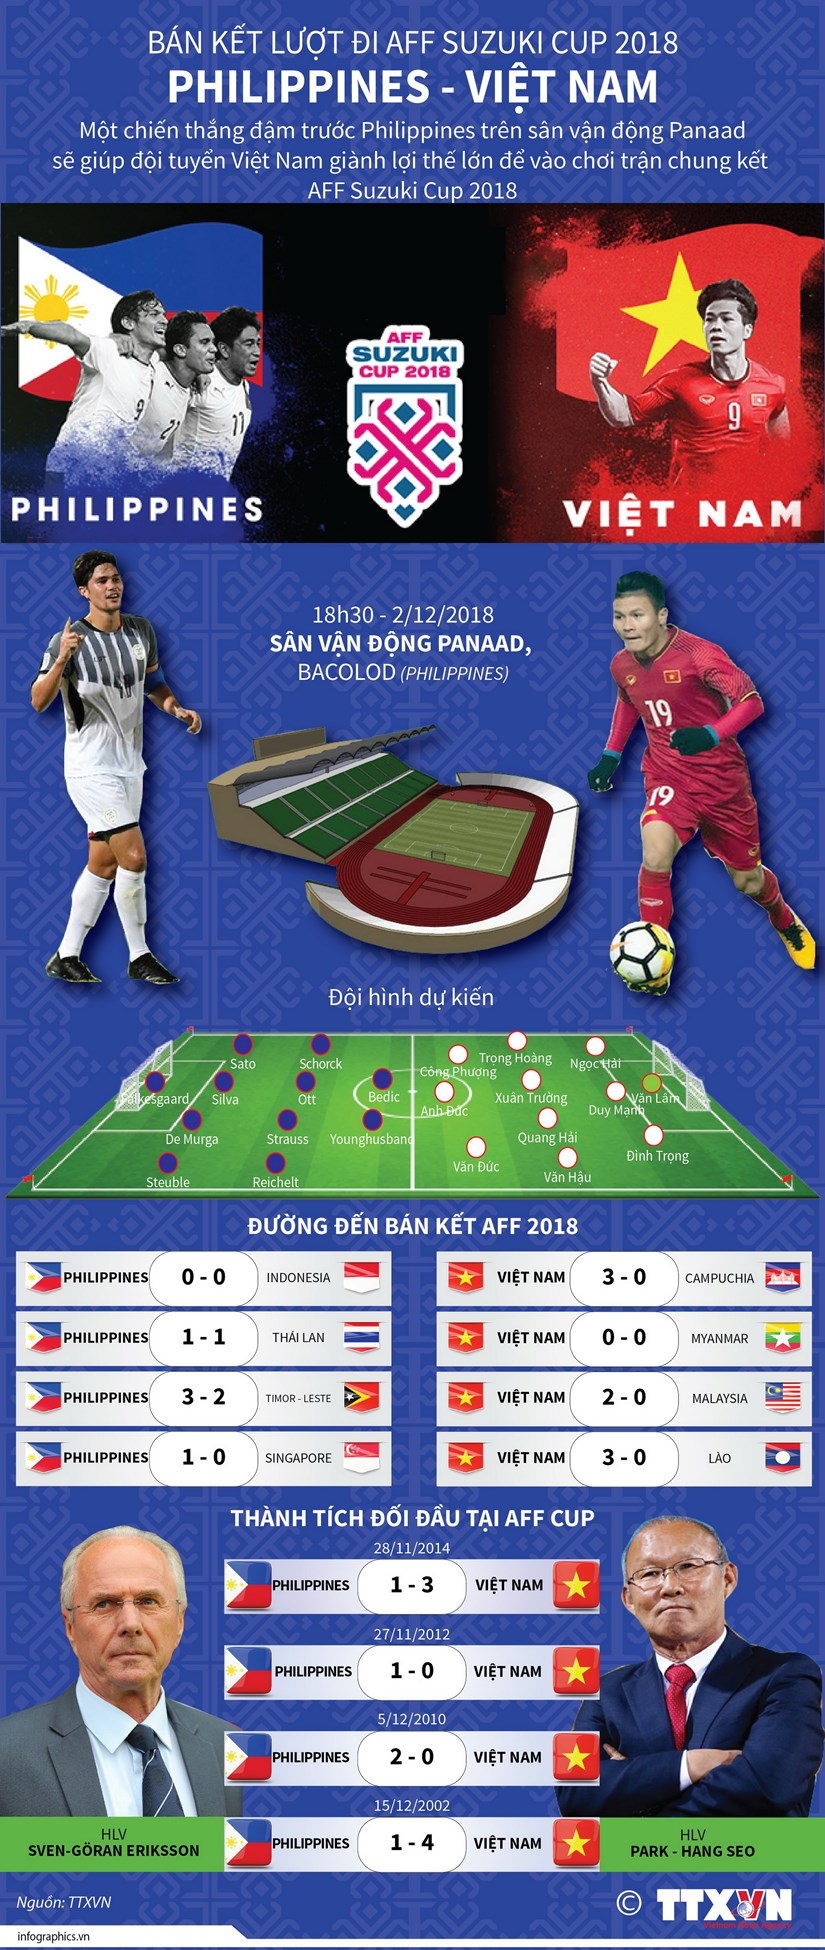 Luot di AFF Cup Philippines vs Viet Nam: Doi nao se gianh loi the? hinh anh 1